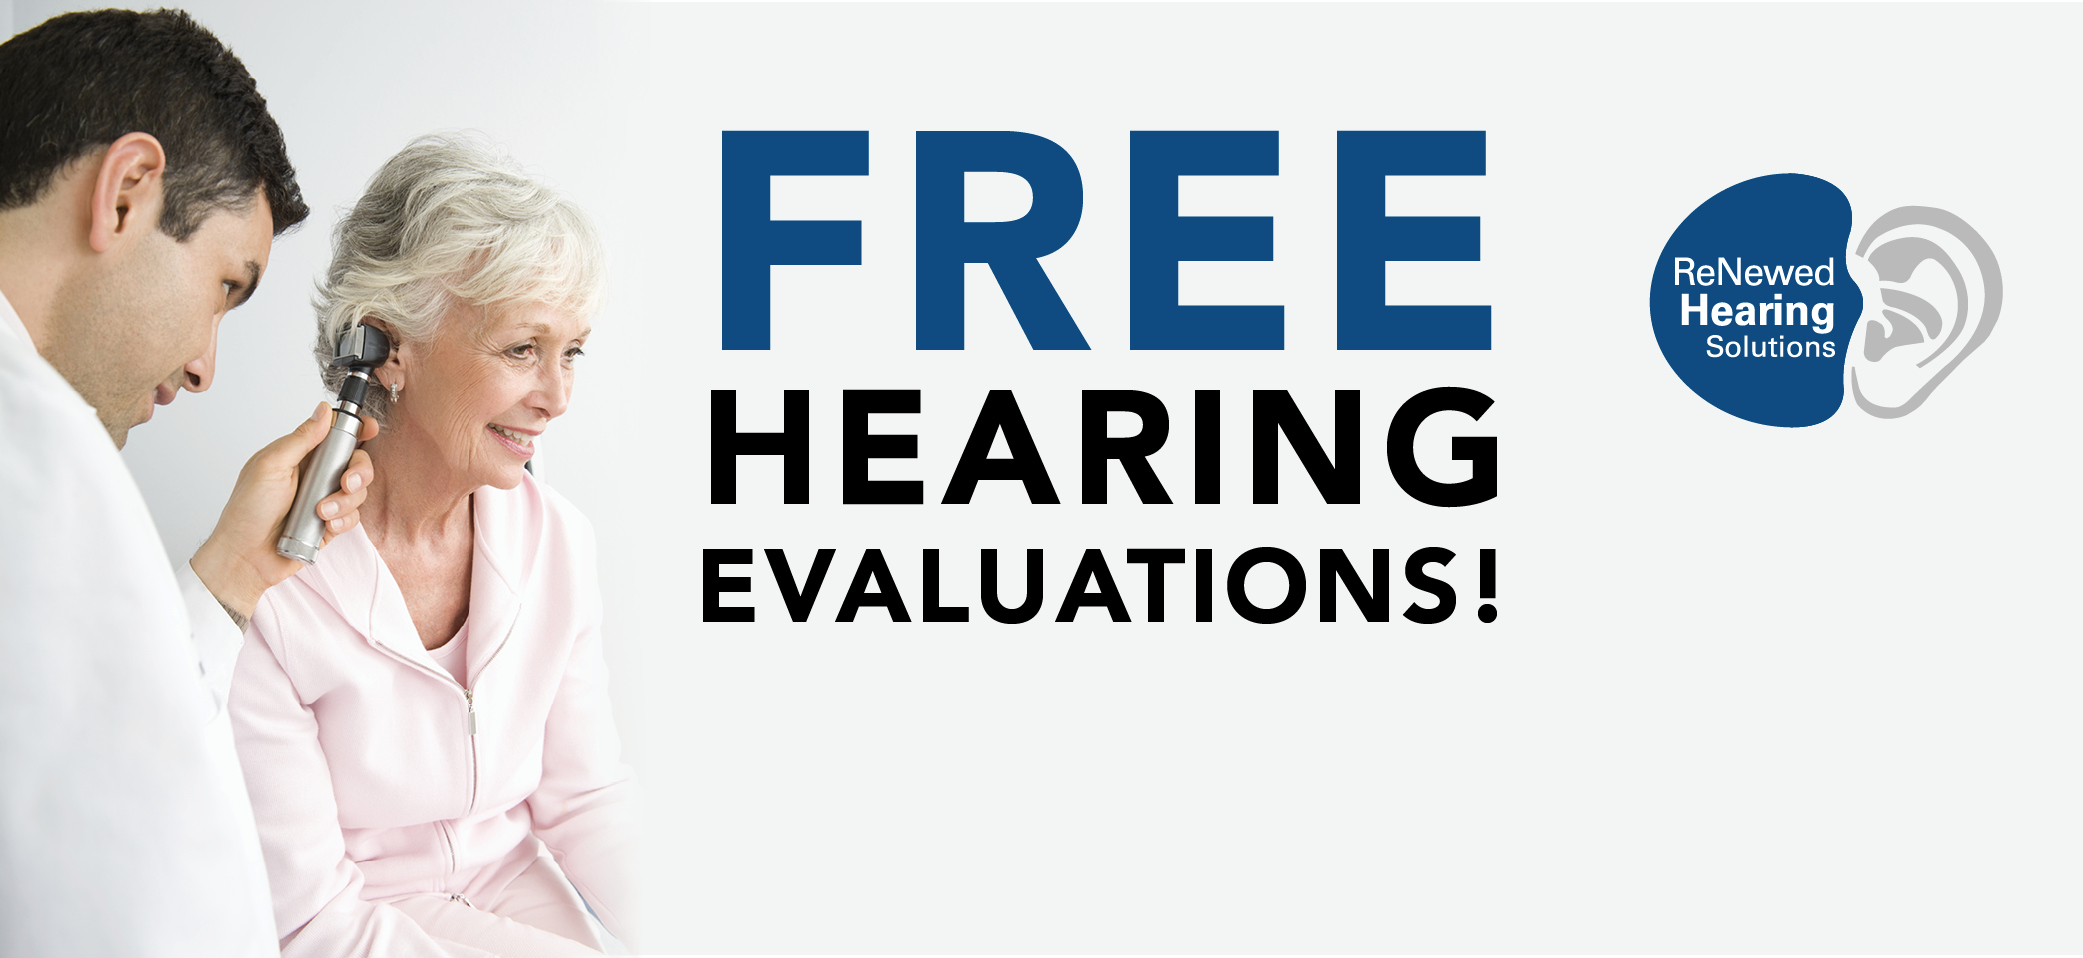 Free Hearing Evaluations in Hershey, Lancaster and Camp Hill, PA